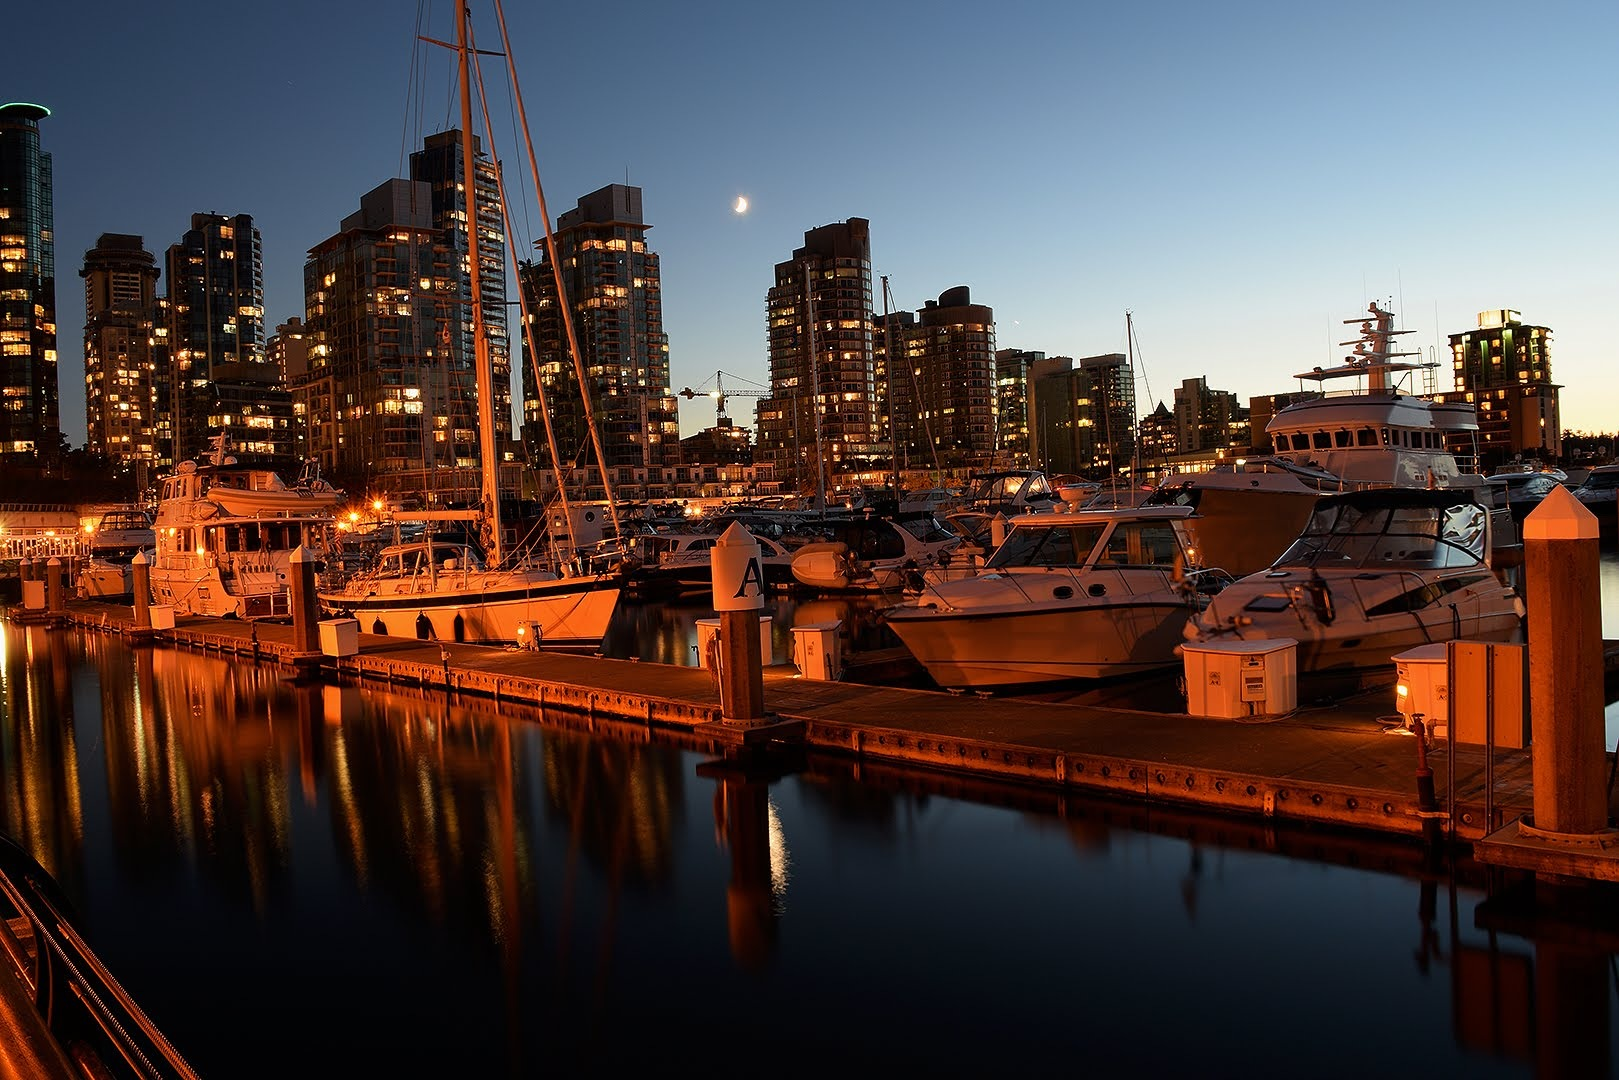 Moon over Coal Harbour, Vancouver, BC Canada by #gregozphotos